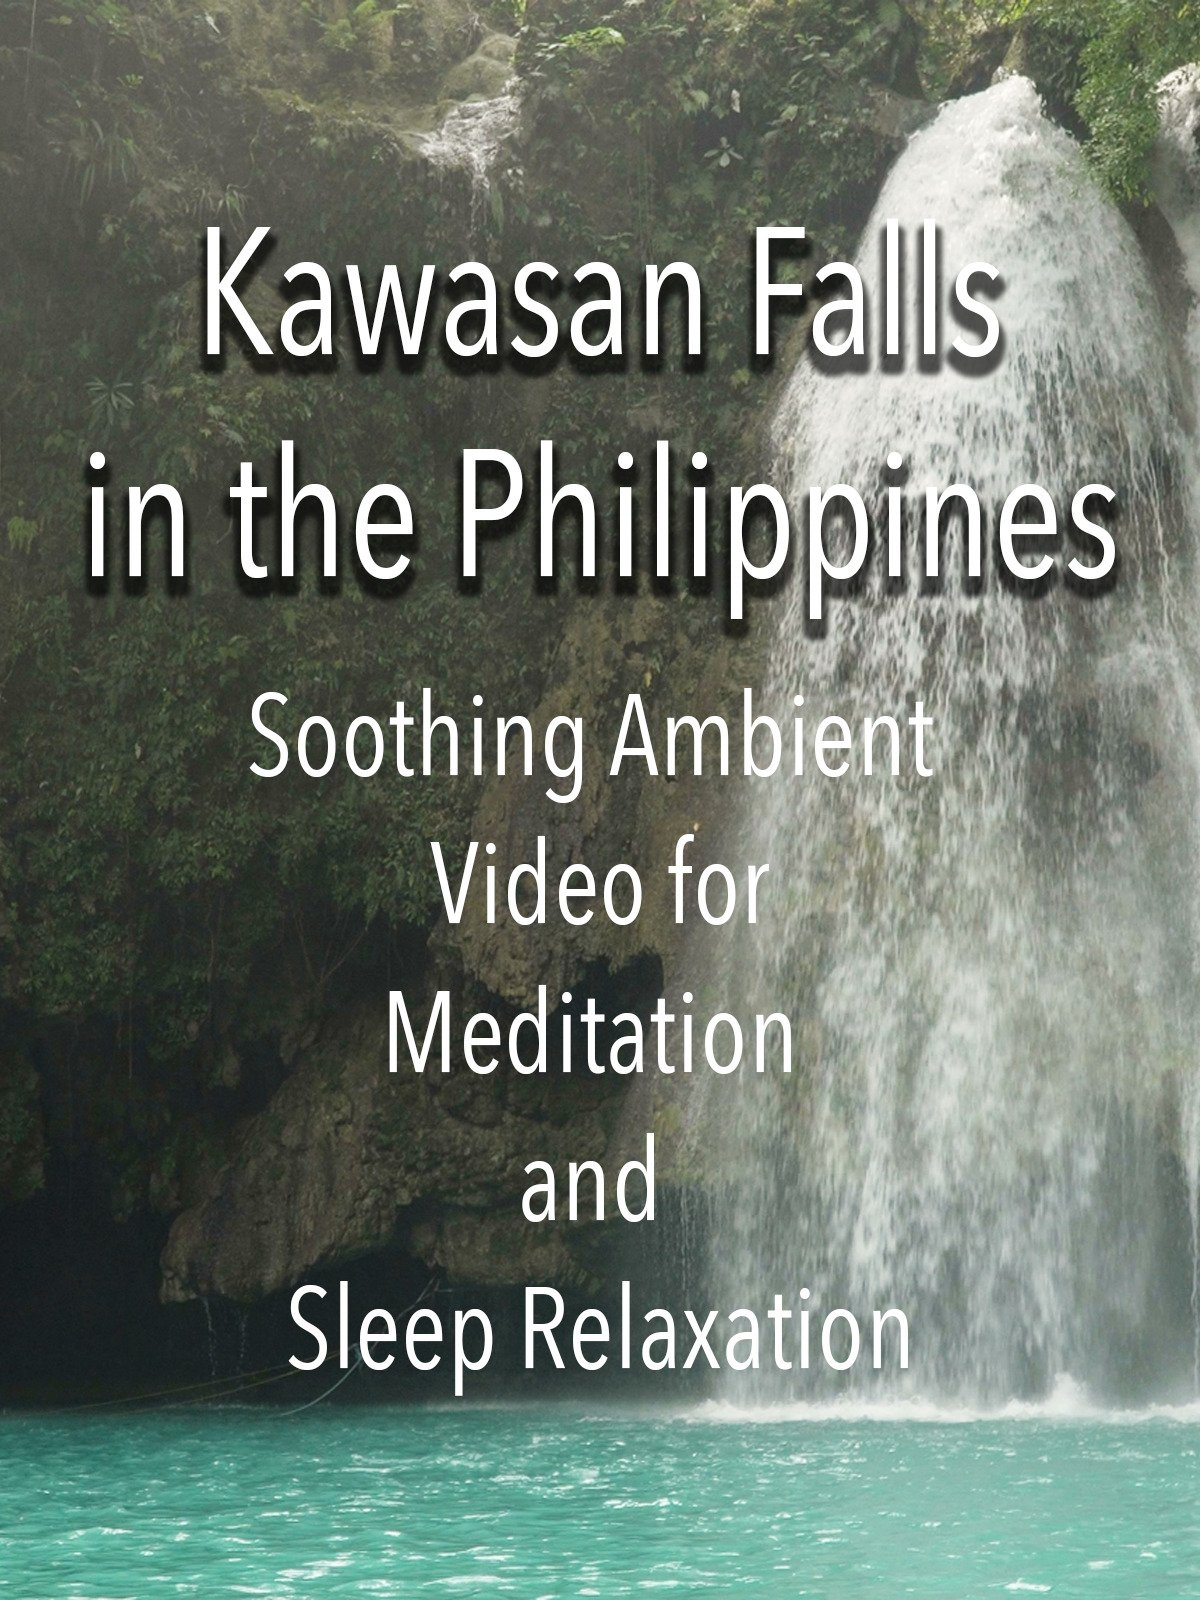 Kawasan Falls in the Philippines Soothing Ambient Video for Meditation and Sleep Relaxation